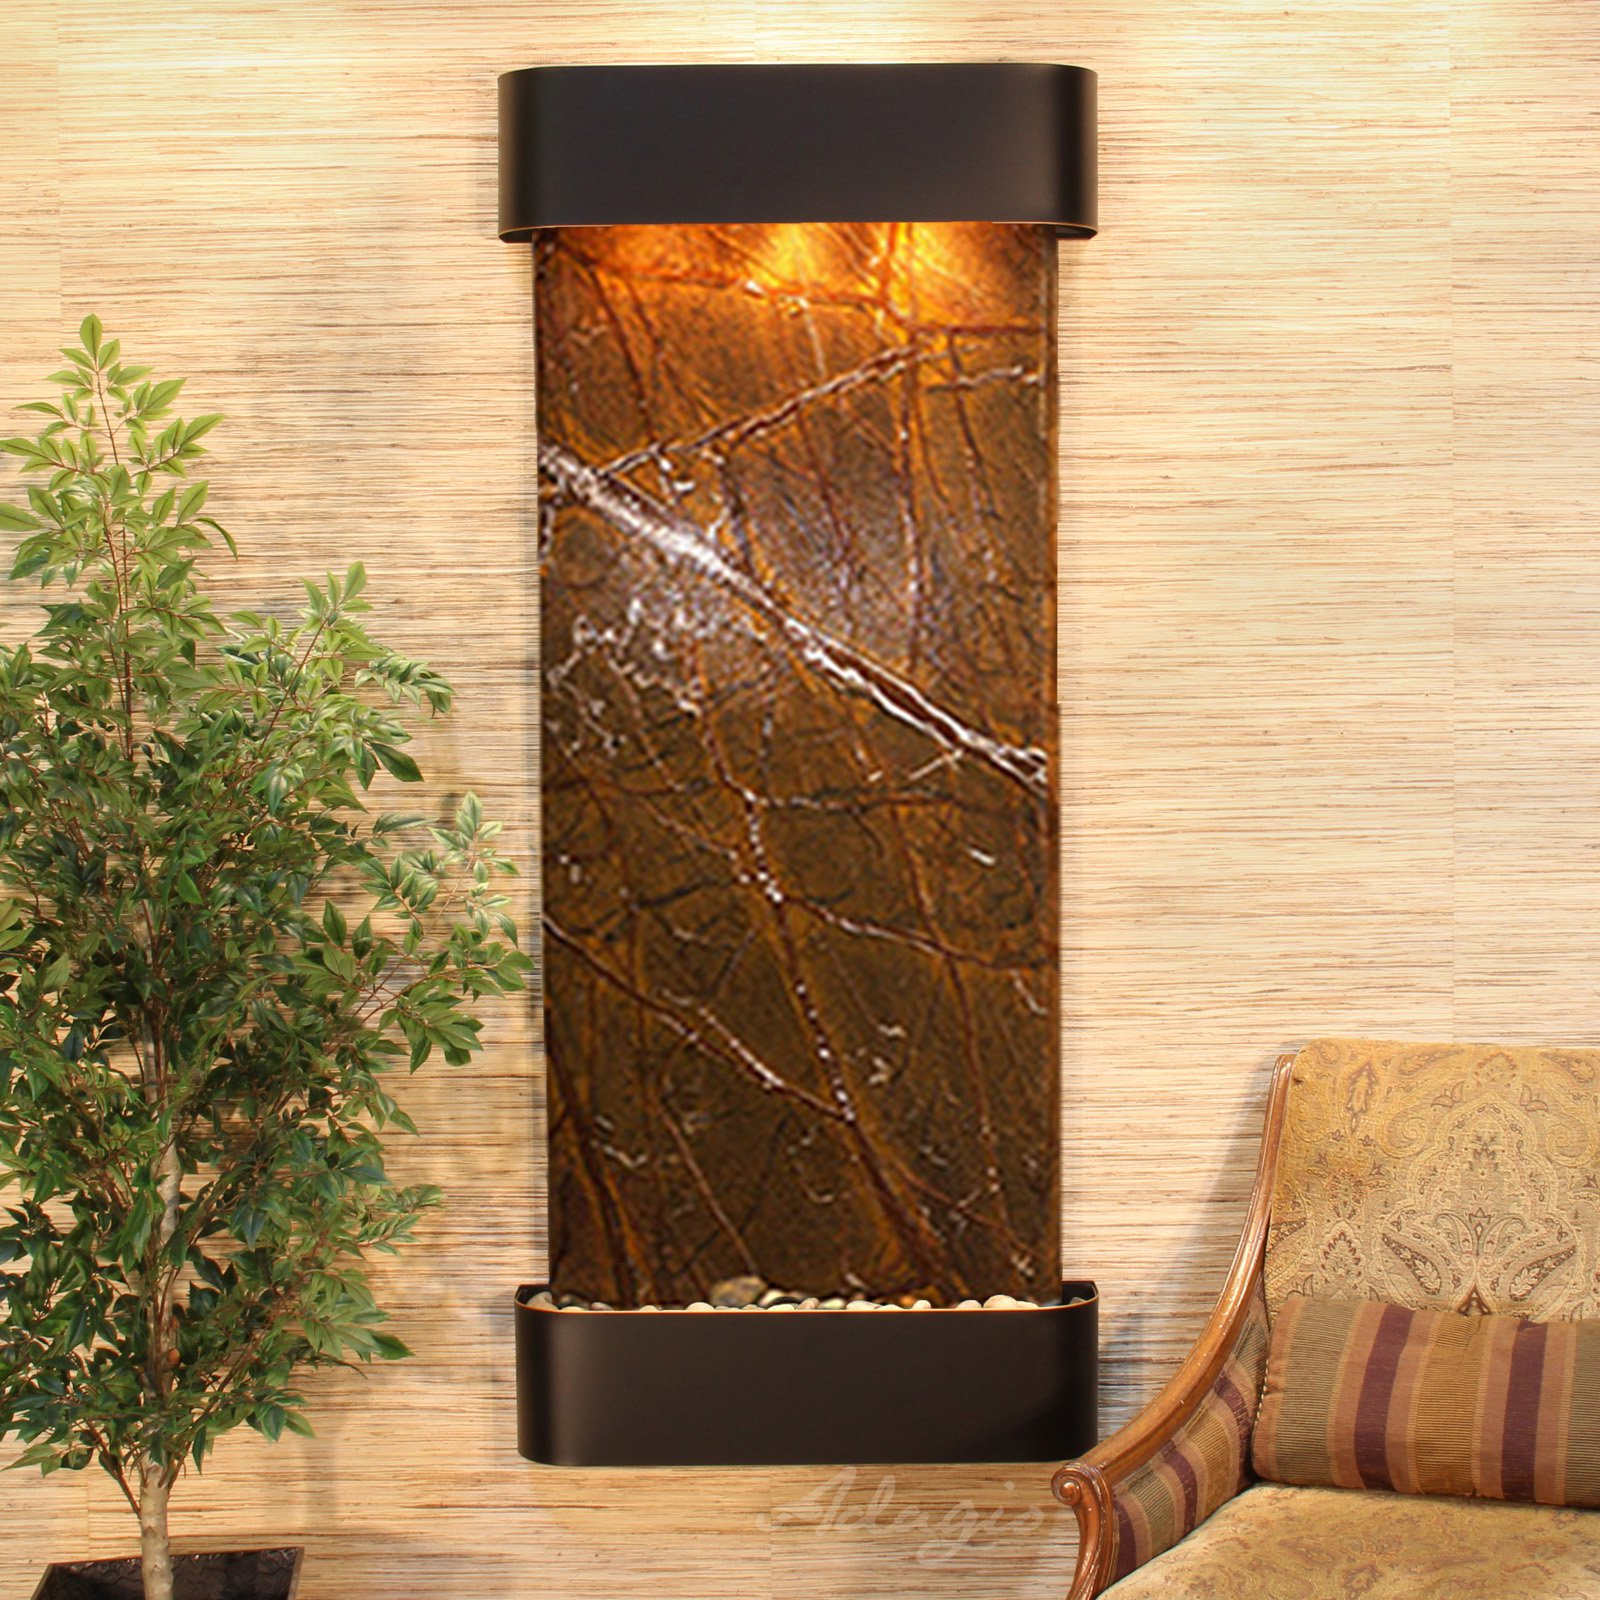 Adagio Inspiration Falls Wall Indoor Fountain - Walmart.com